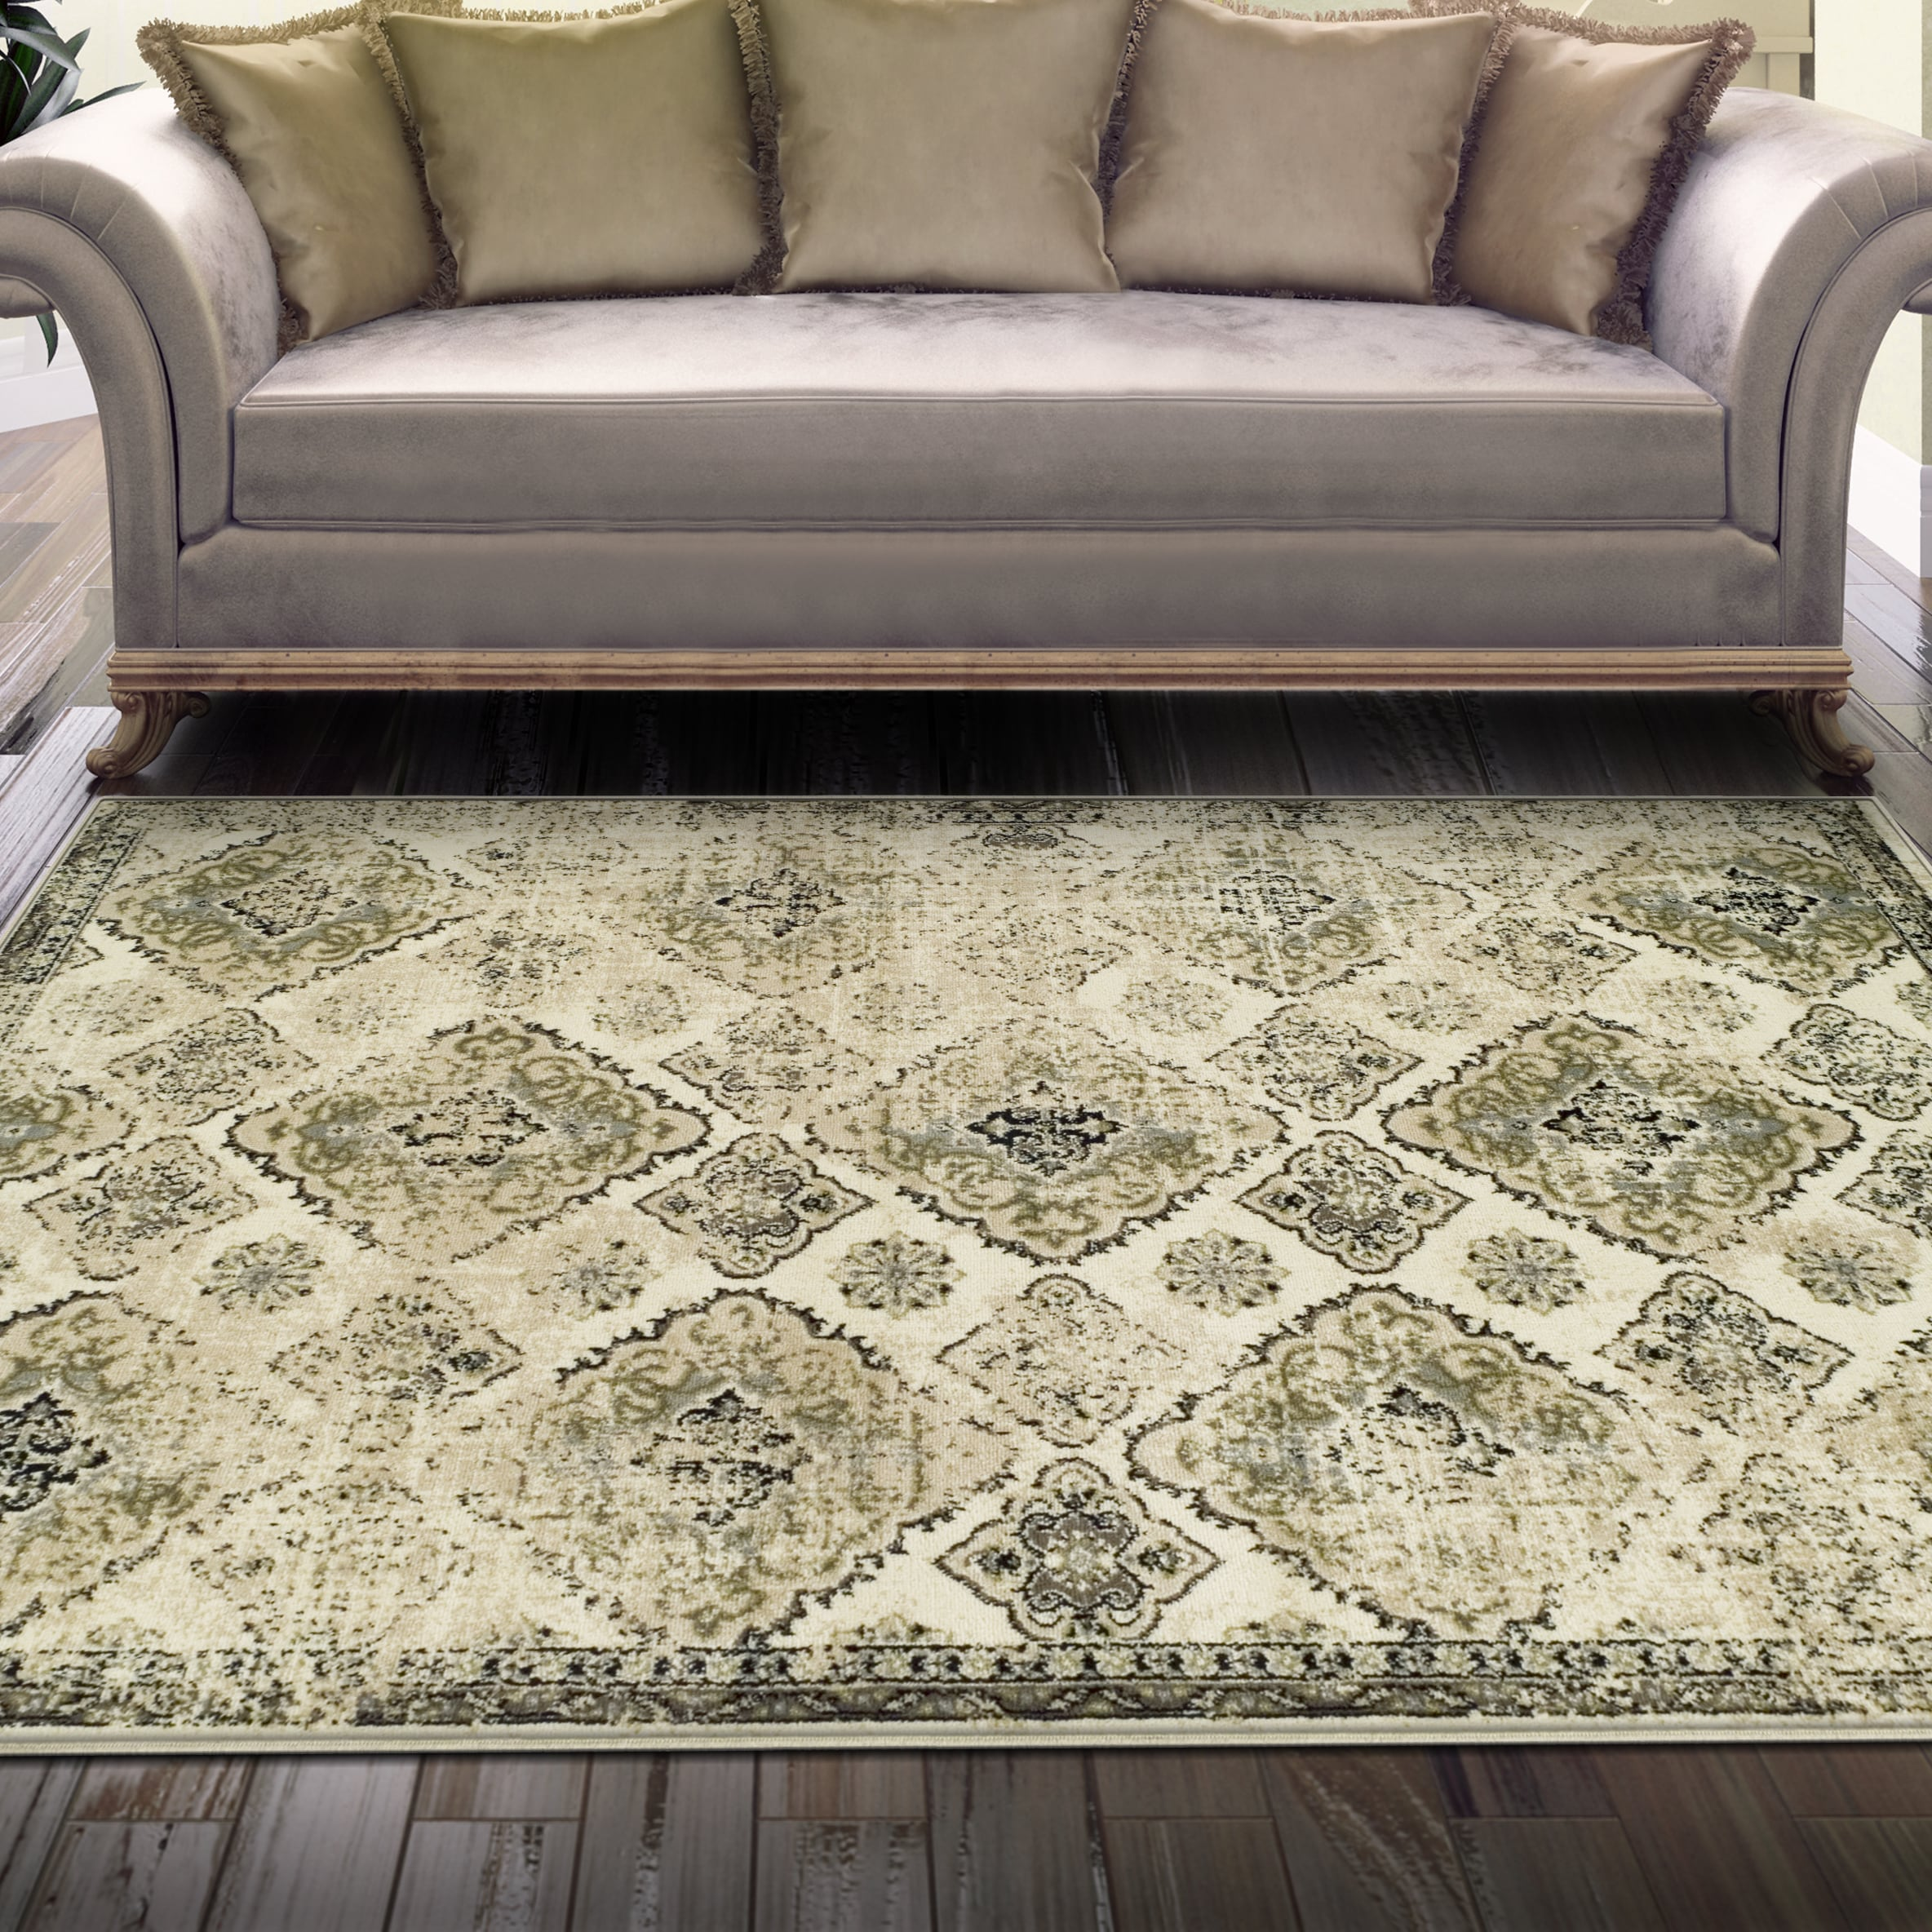 Superior Designer Mayfair Area Rug Collection   5u0027 X 8u0027   Free Shipping  Today   Overstock.com   22569616